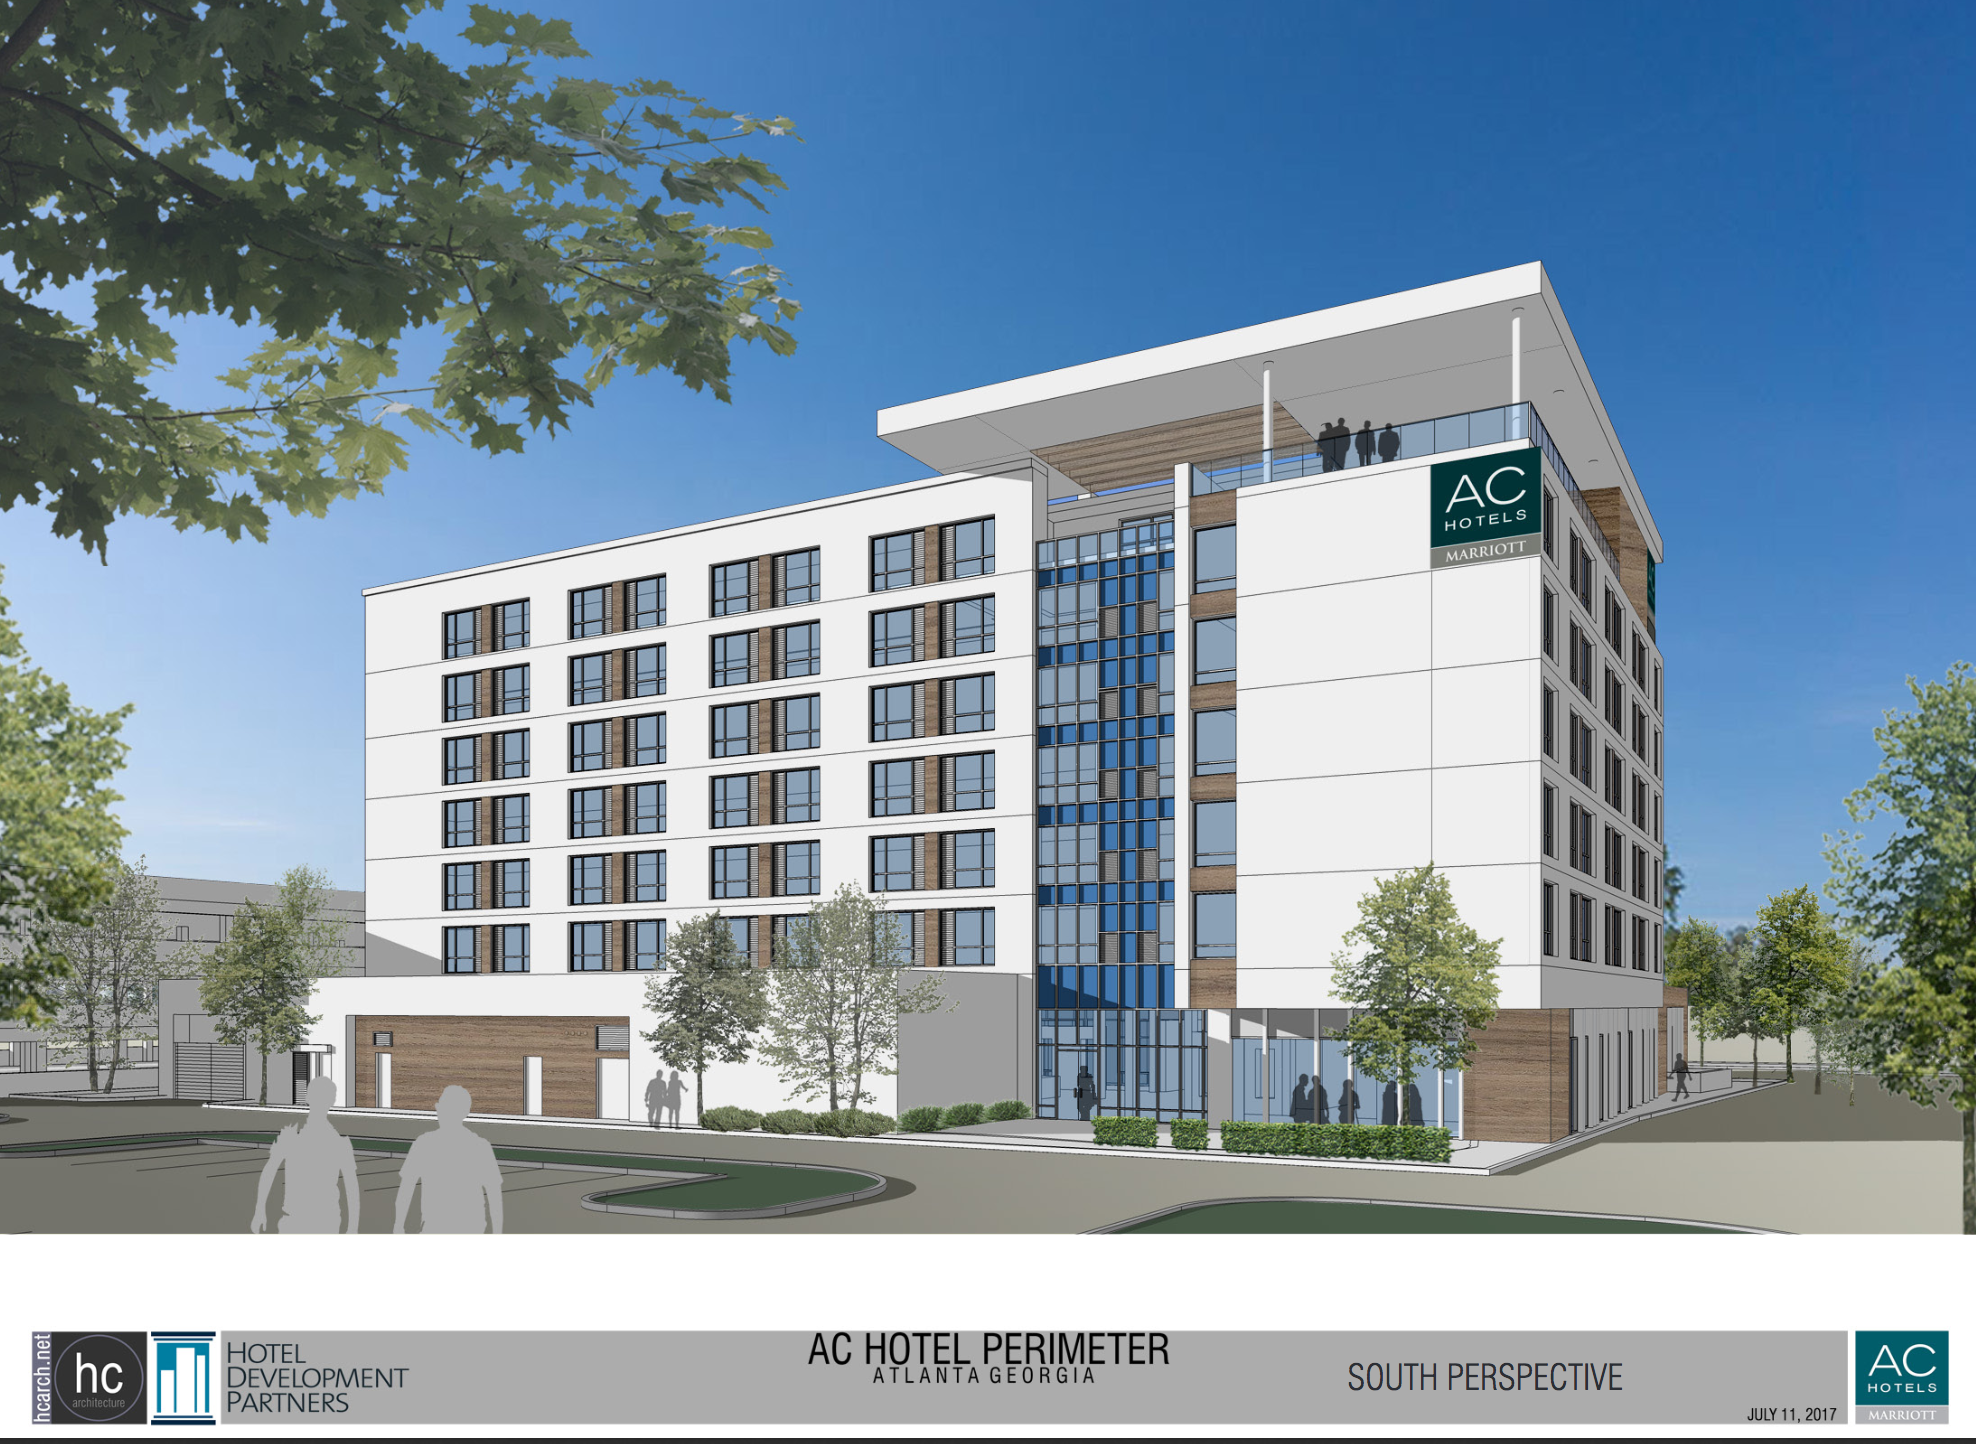 A rendering of the seven-story hotel with white modern facade.